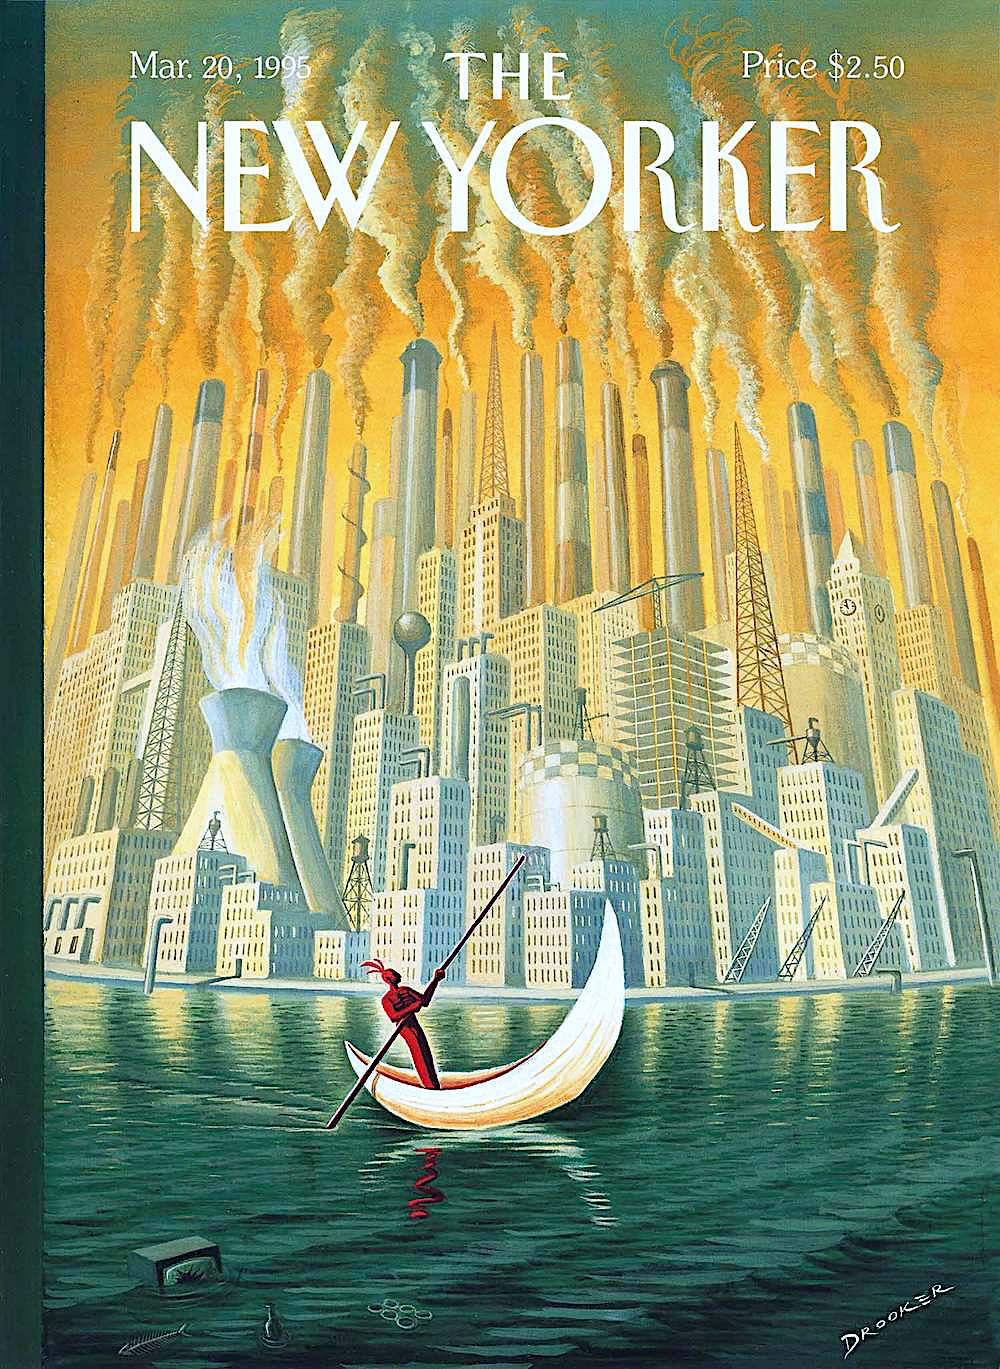 an Eric Drooker illustration for The New Yorker March 20 1995, a past aboriginal in a boat passes and urban industrial city